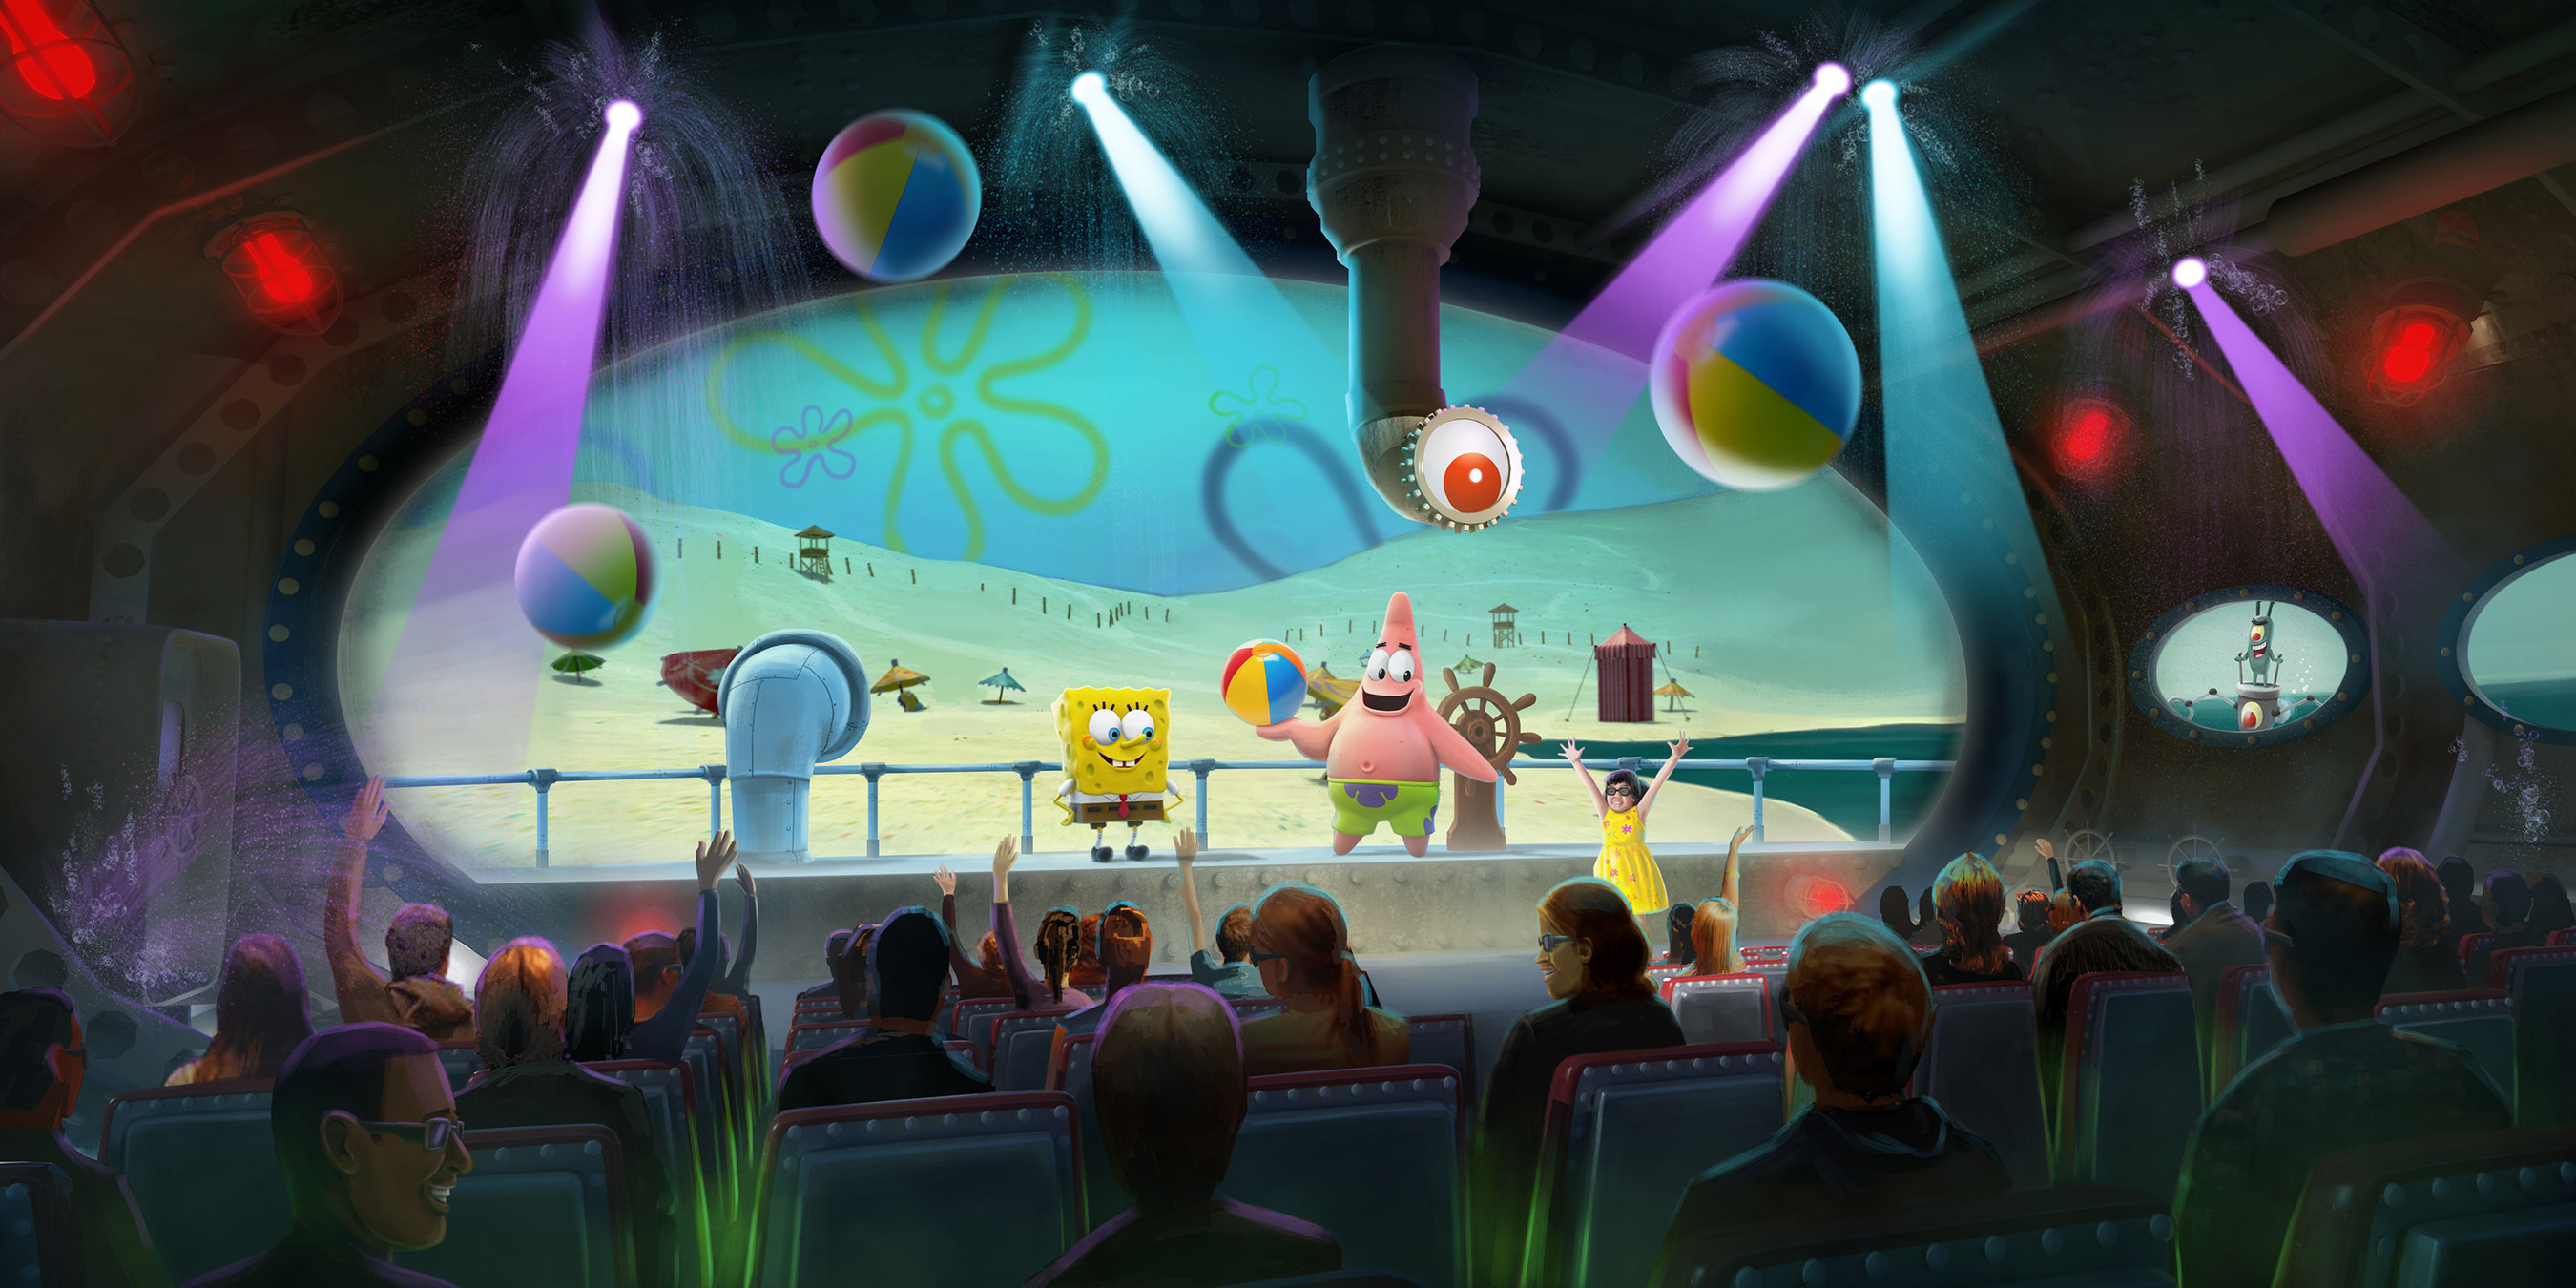 Visitors will be introduced to a new one-of-a-kind immersive and interactive SpongeBob SubPants experience this Memorial Day Weekend at Moody Gardens, Galveston Island